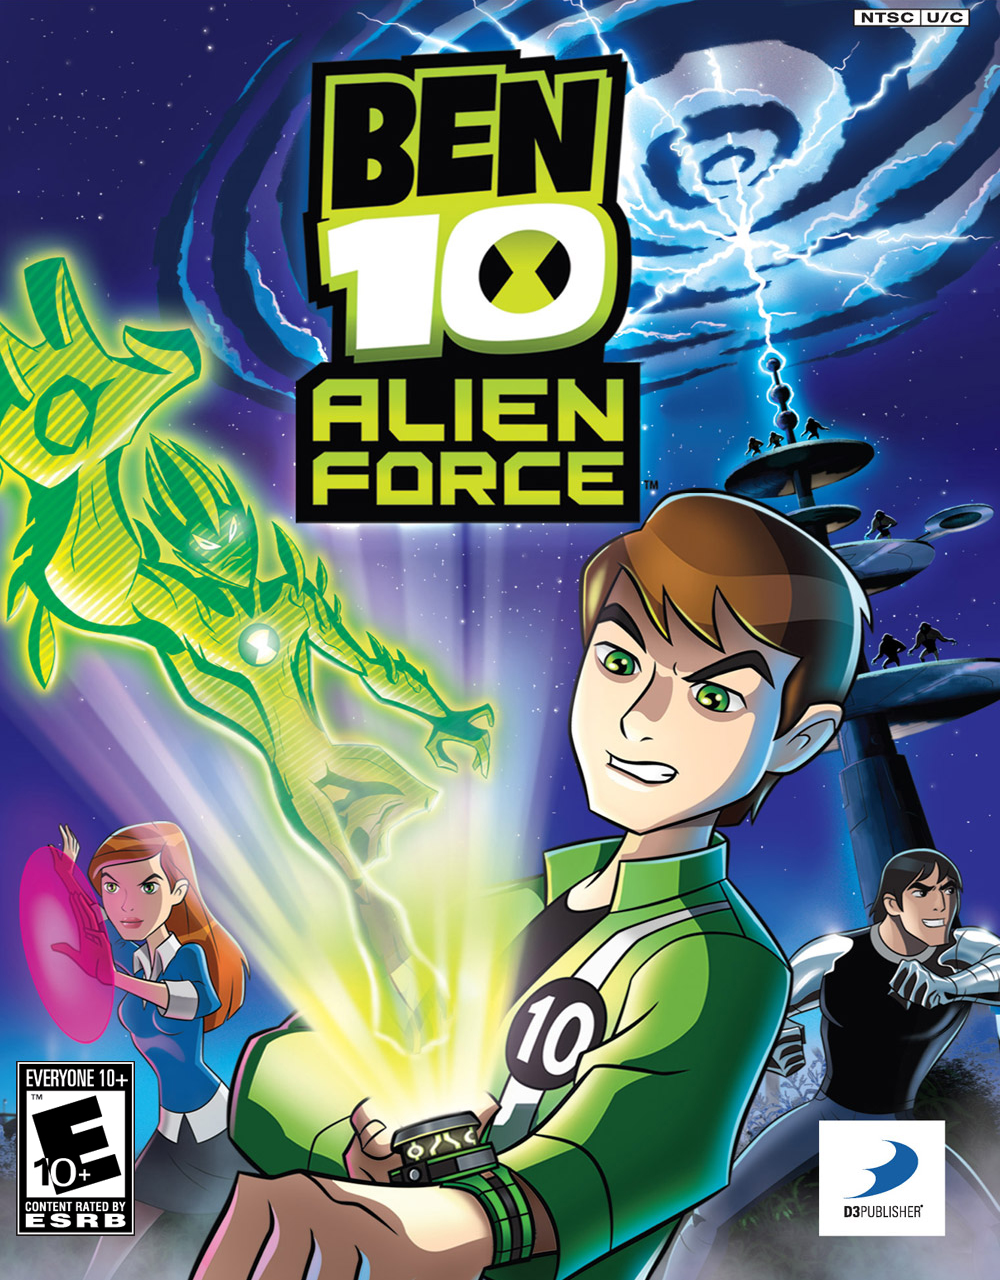 Ben 10 Alien Force Omnimatch | Play Game Online & Free ...